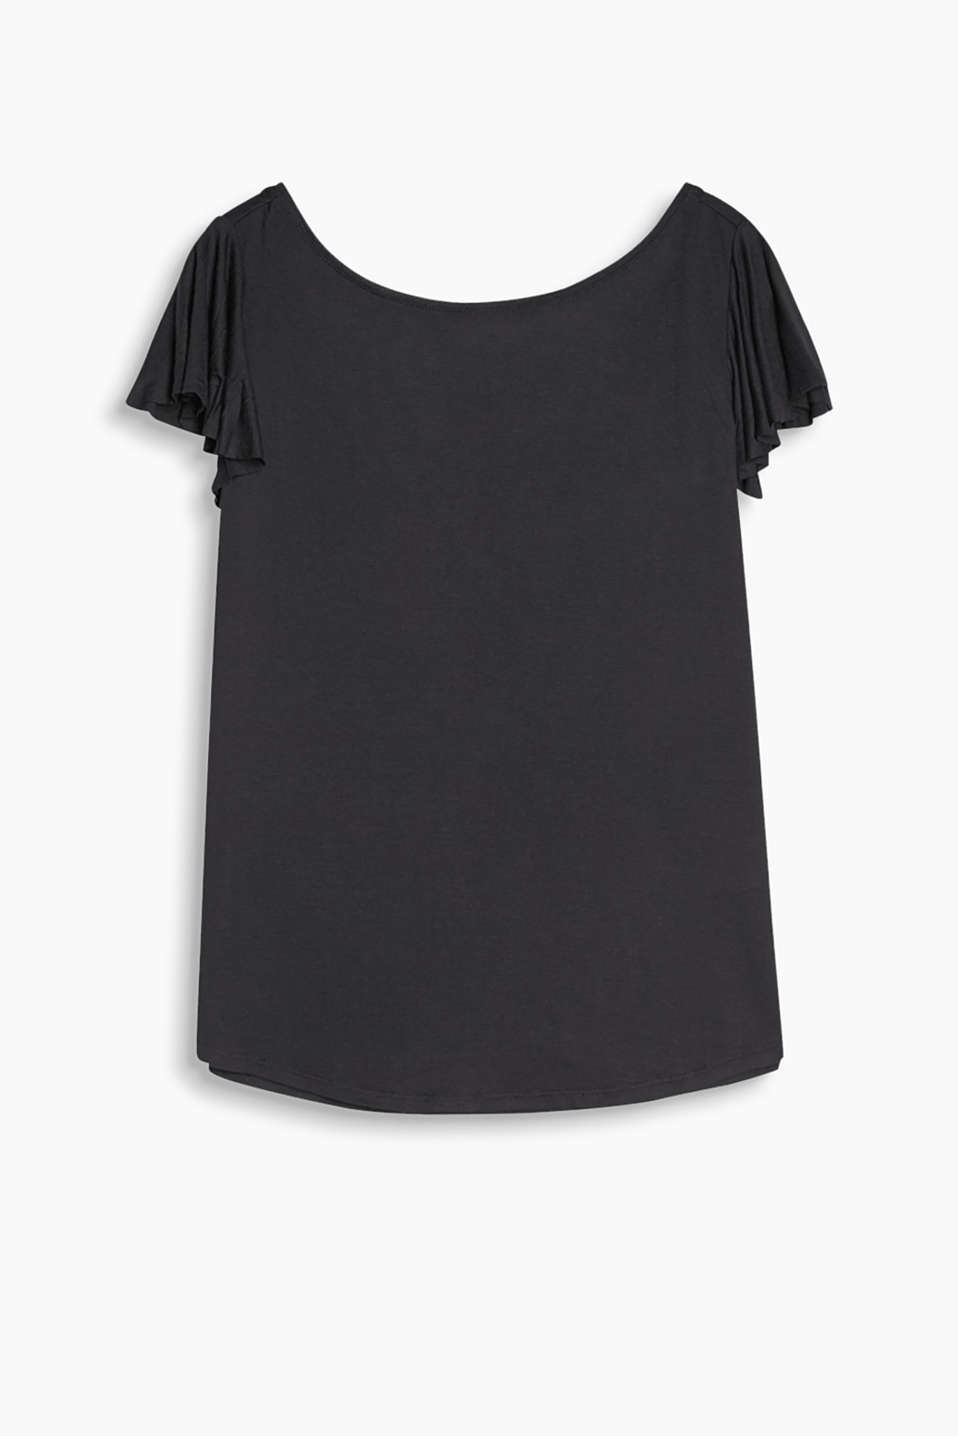 Floaty T-shirt with a beautiful back neckline and feminine flounce sleeves